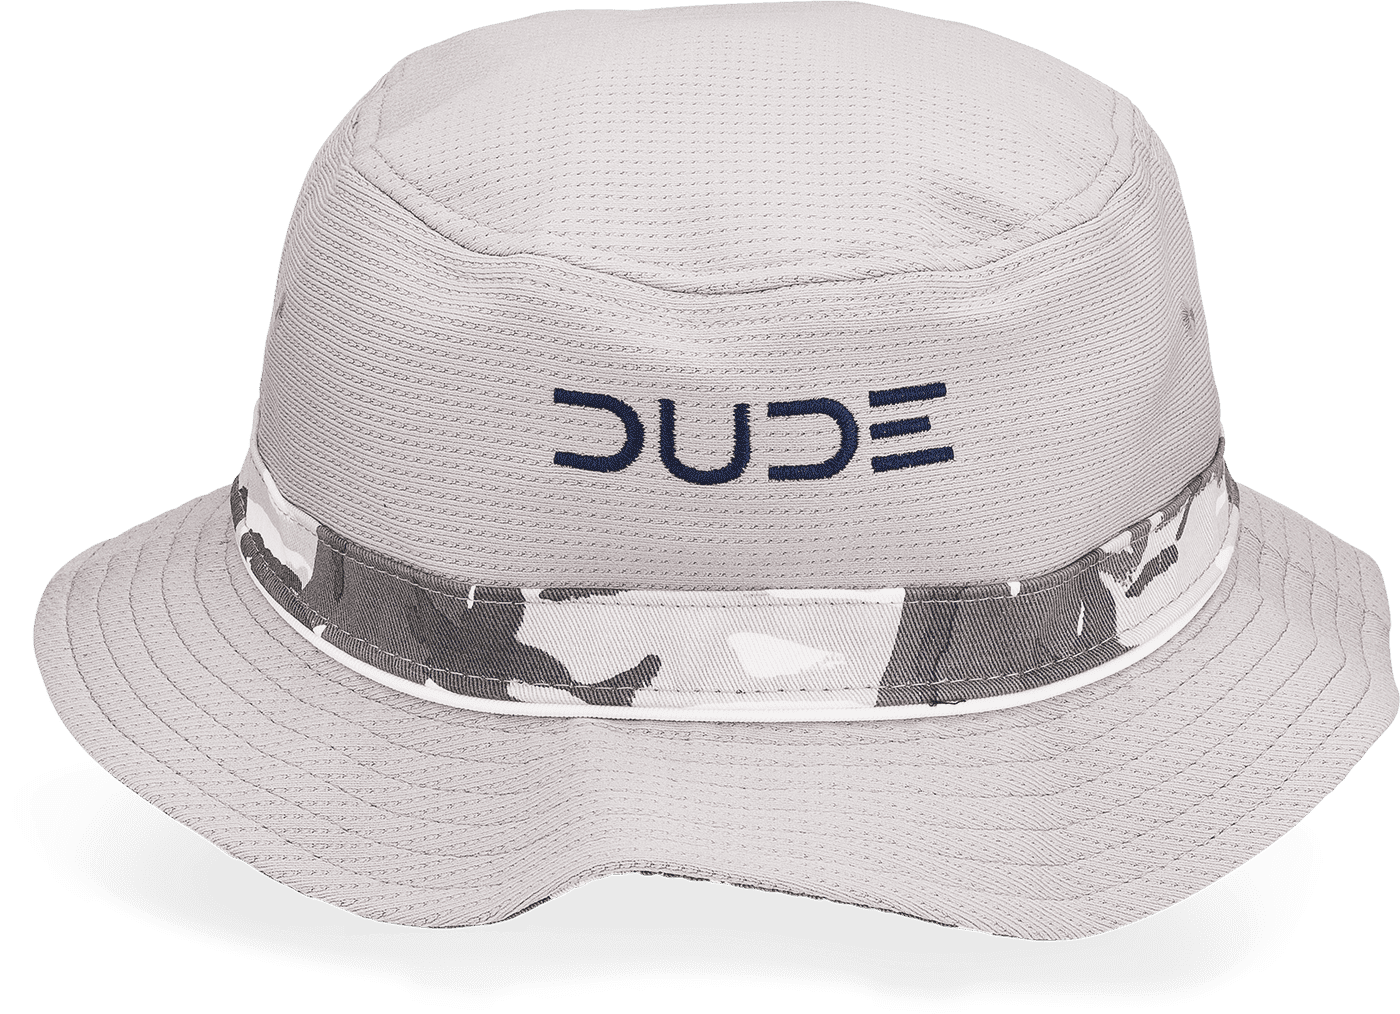 CAMO Pro-Max Tech Bucket Hat - DUDE Products